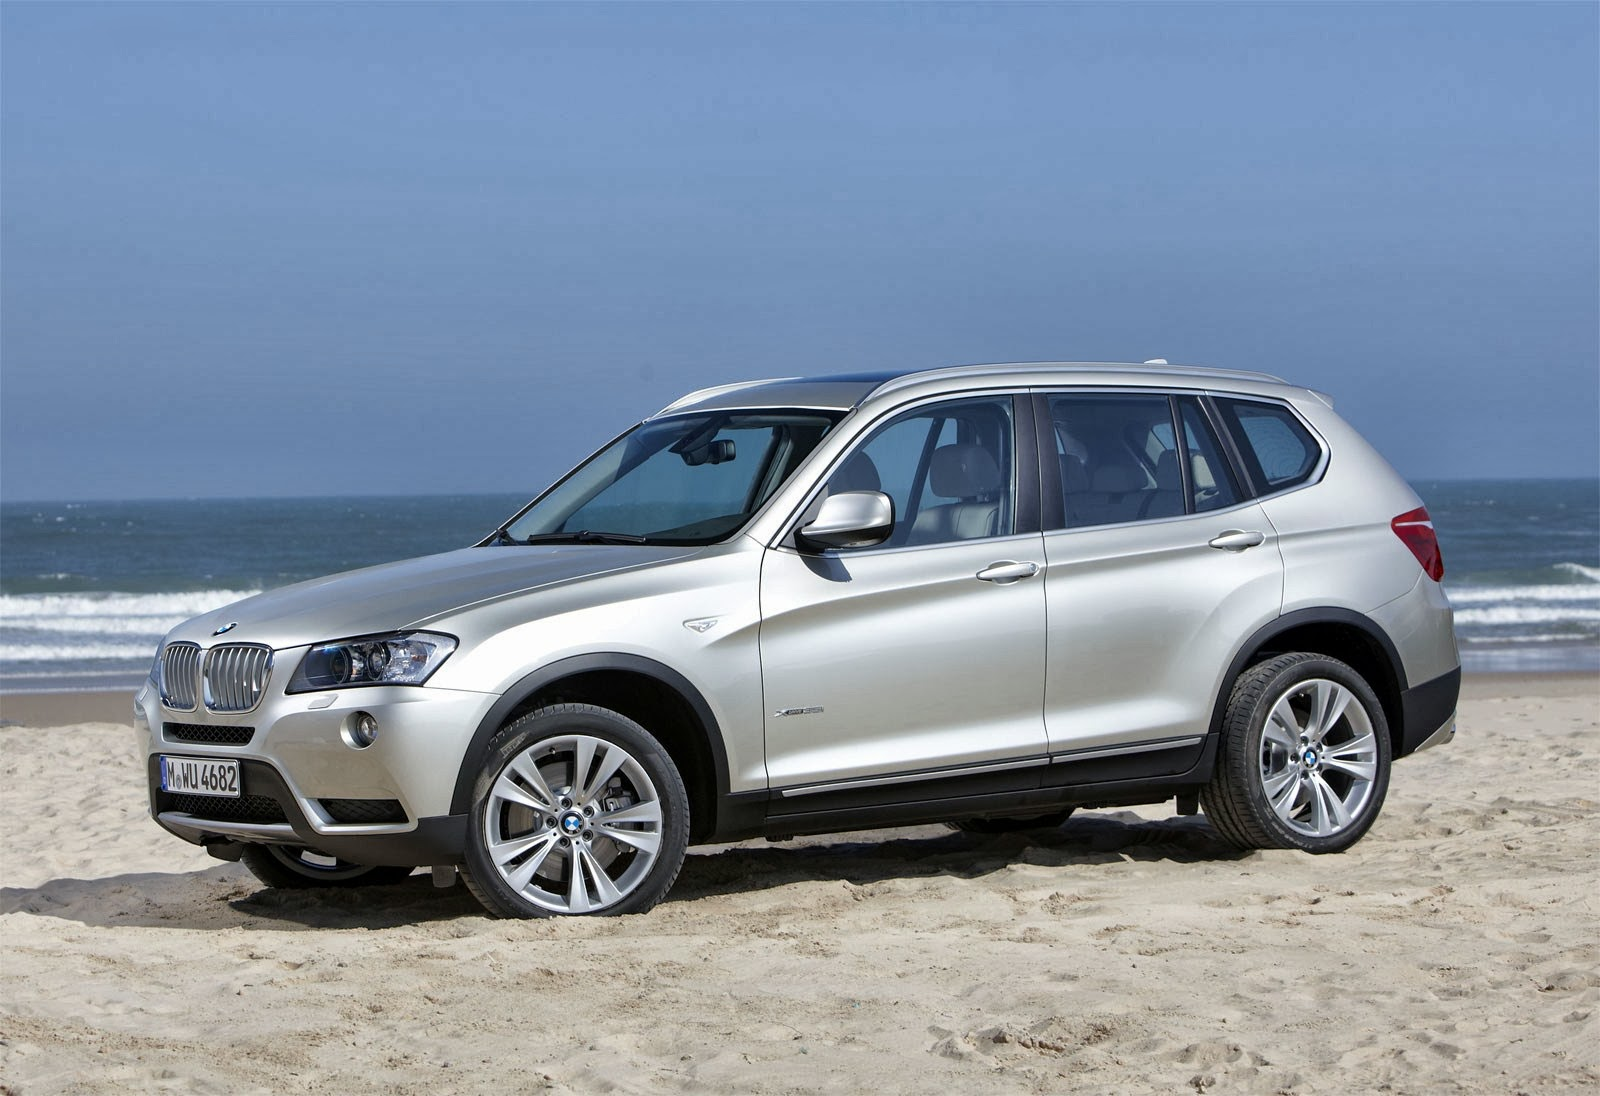 Bmw X3 Xdrive35i Suv Car Review Prices Information